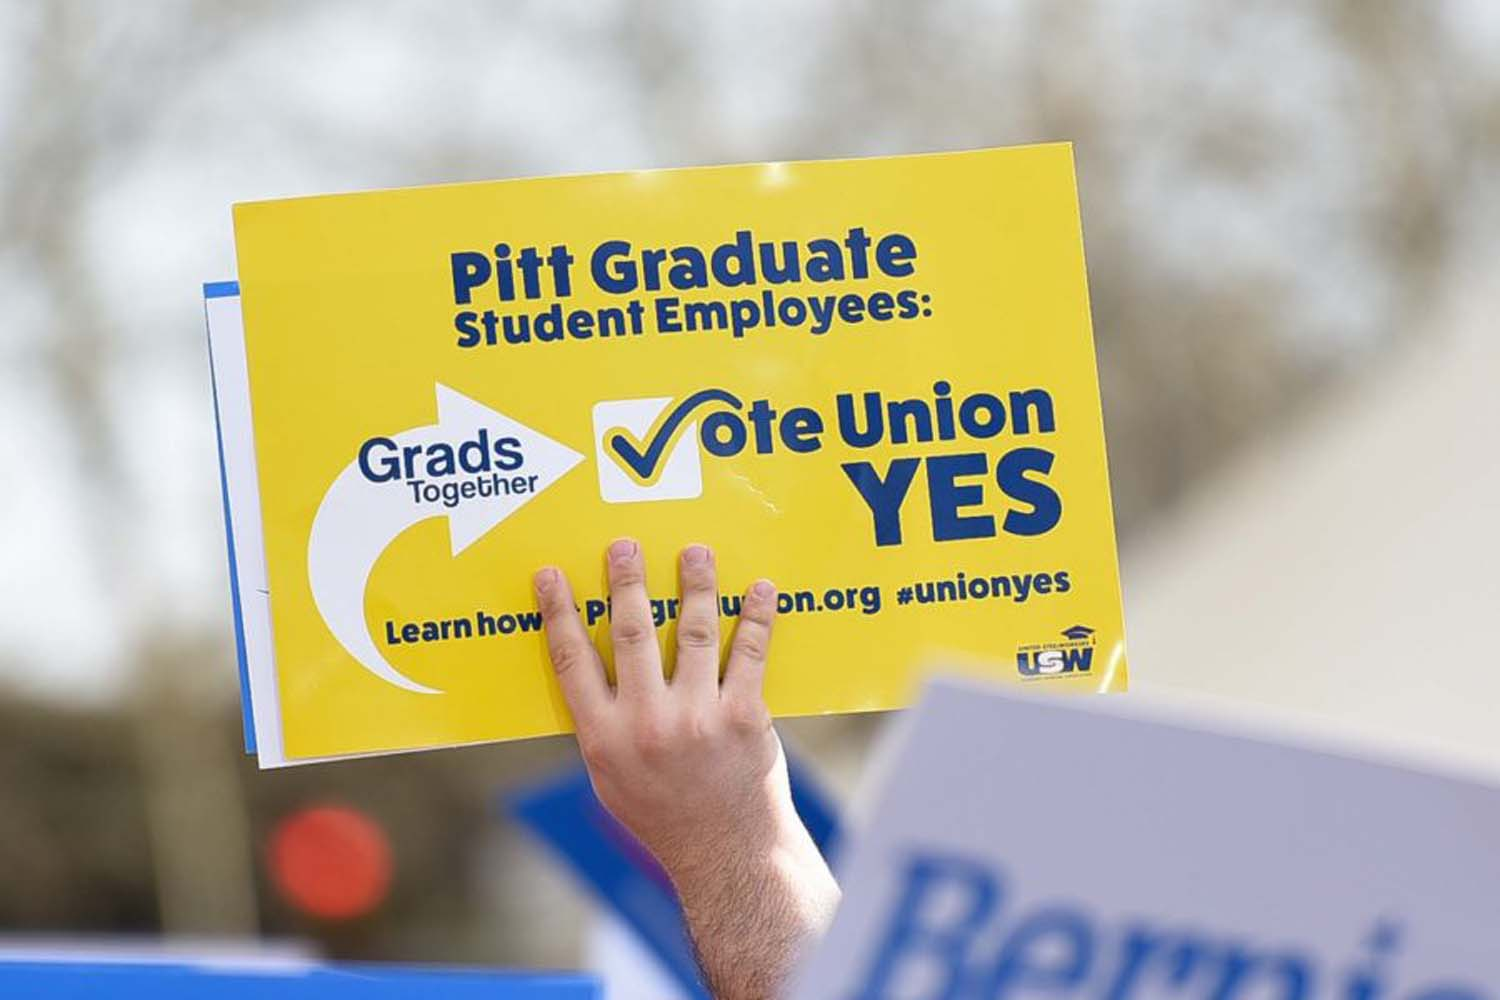 The Pennsylvania Labor Relations Board filed a decision Wednesday ordering a new election for Pitt's graduate student union.